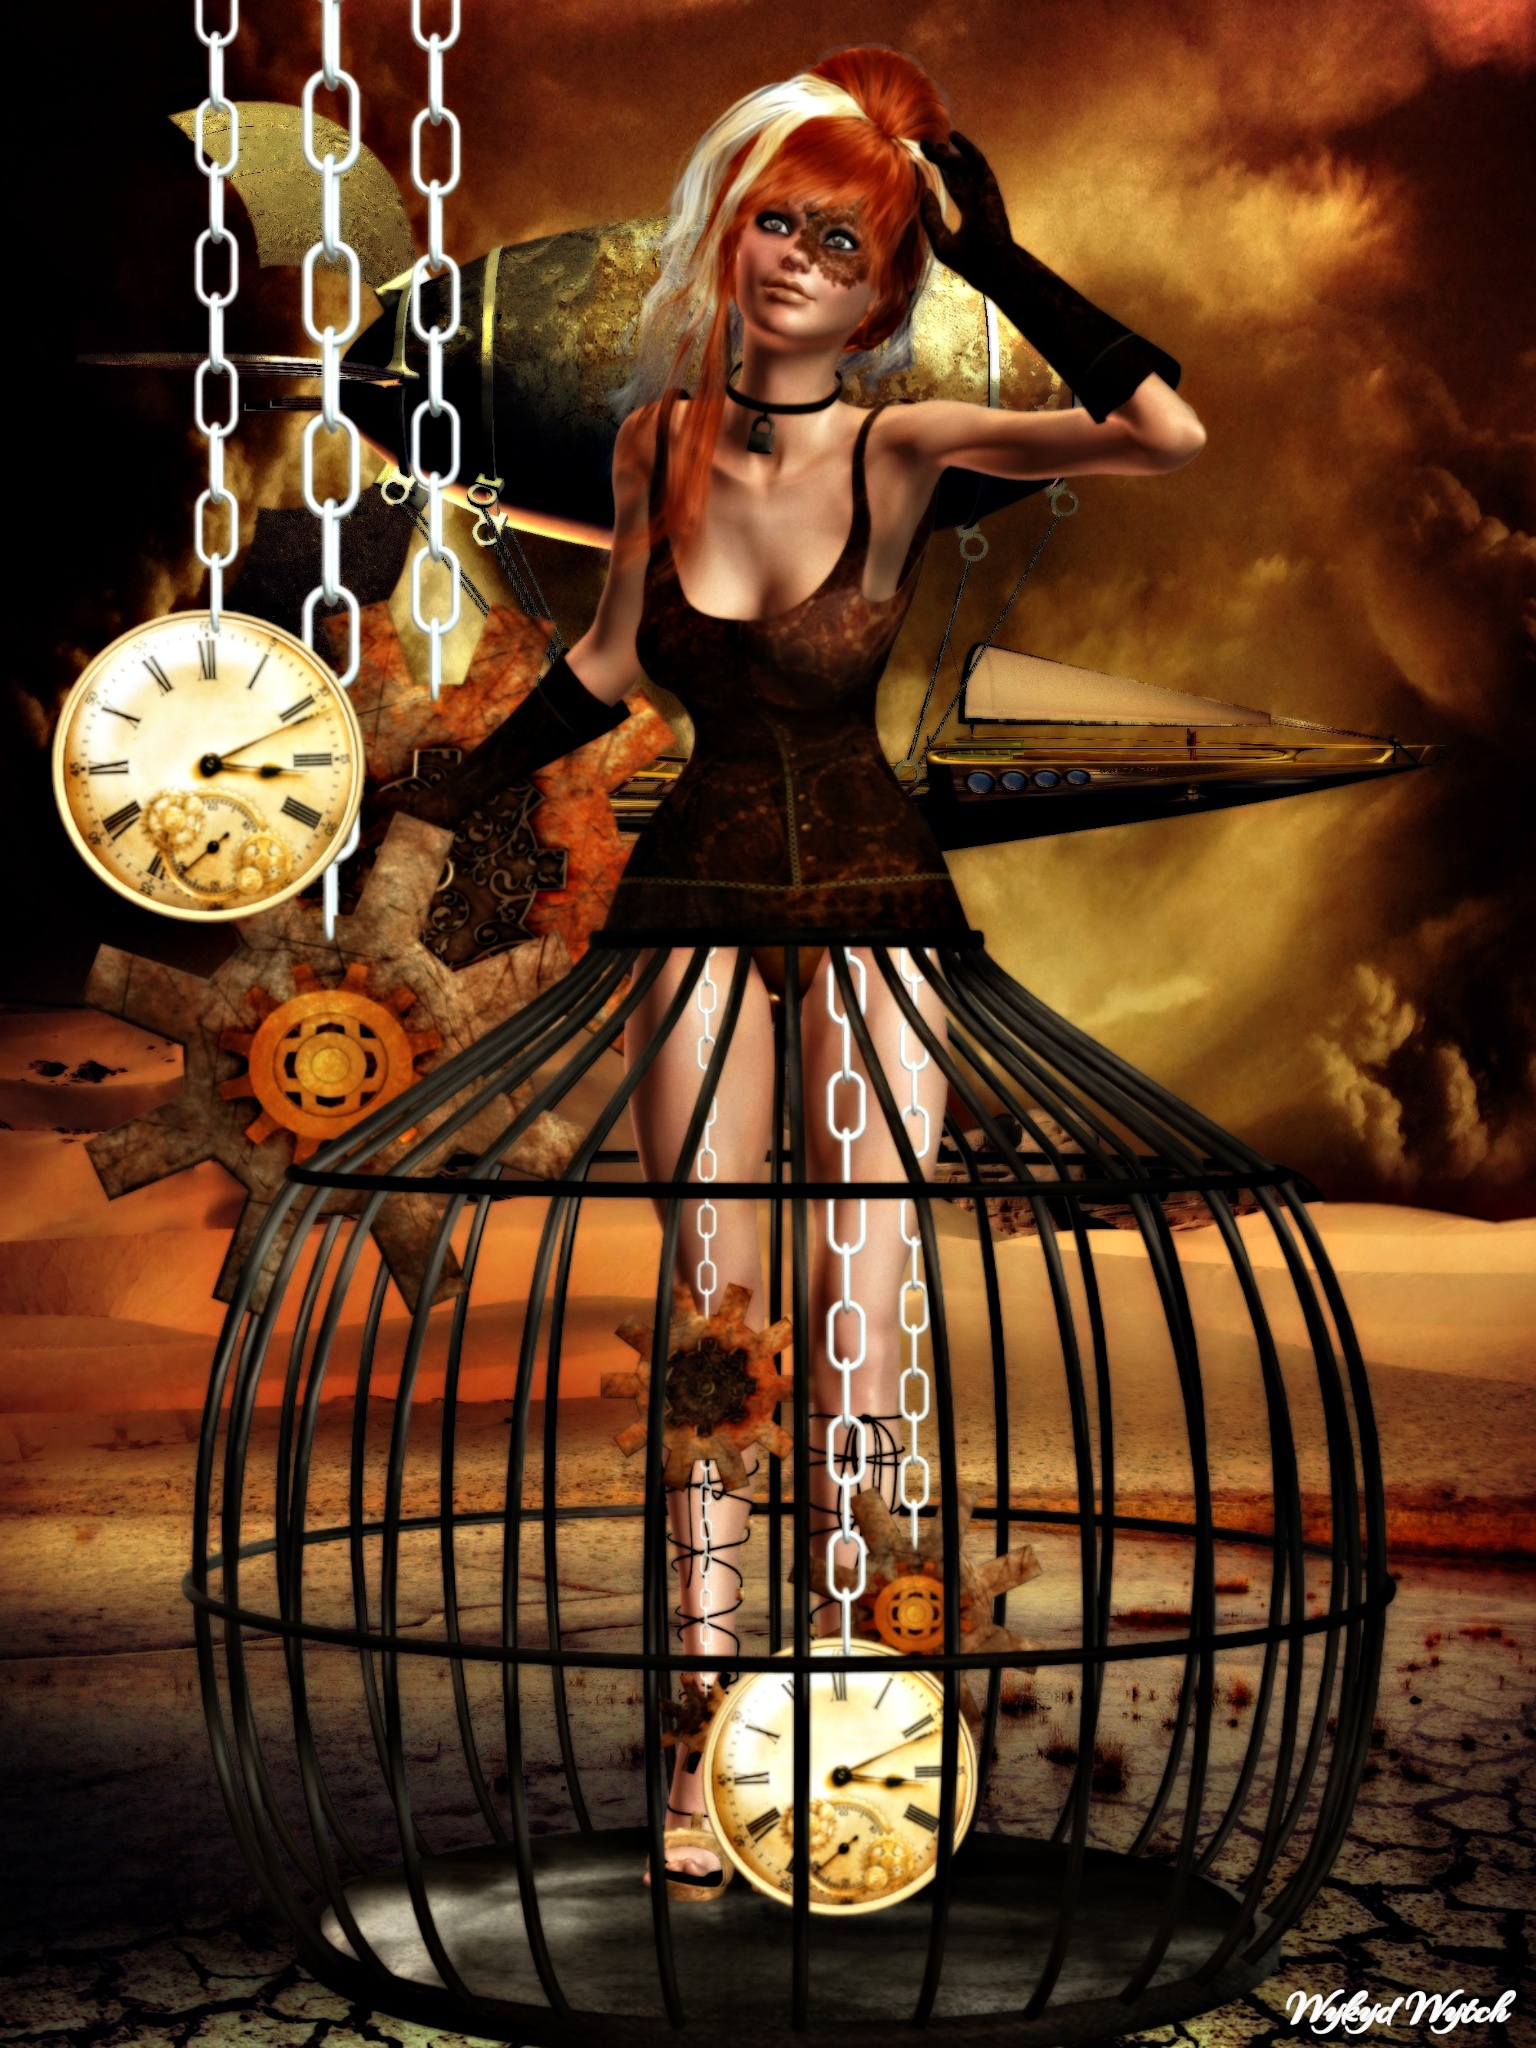 Steampunk (Clockwork) by Emerald City Digital